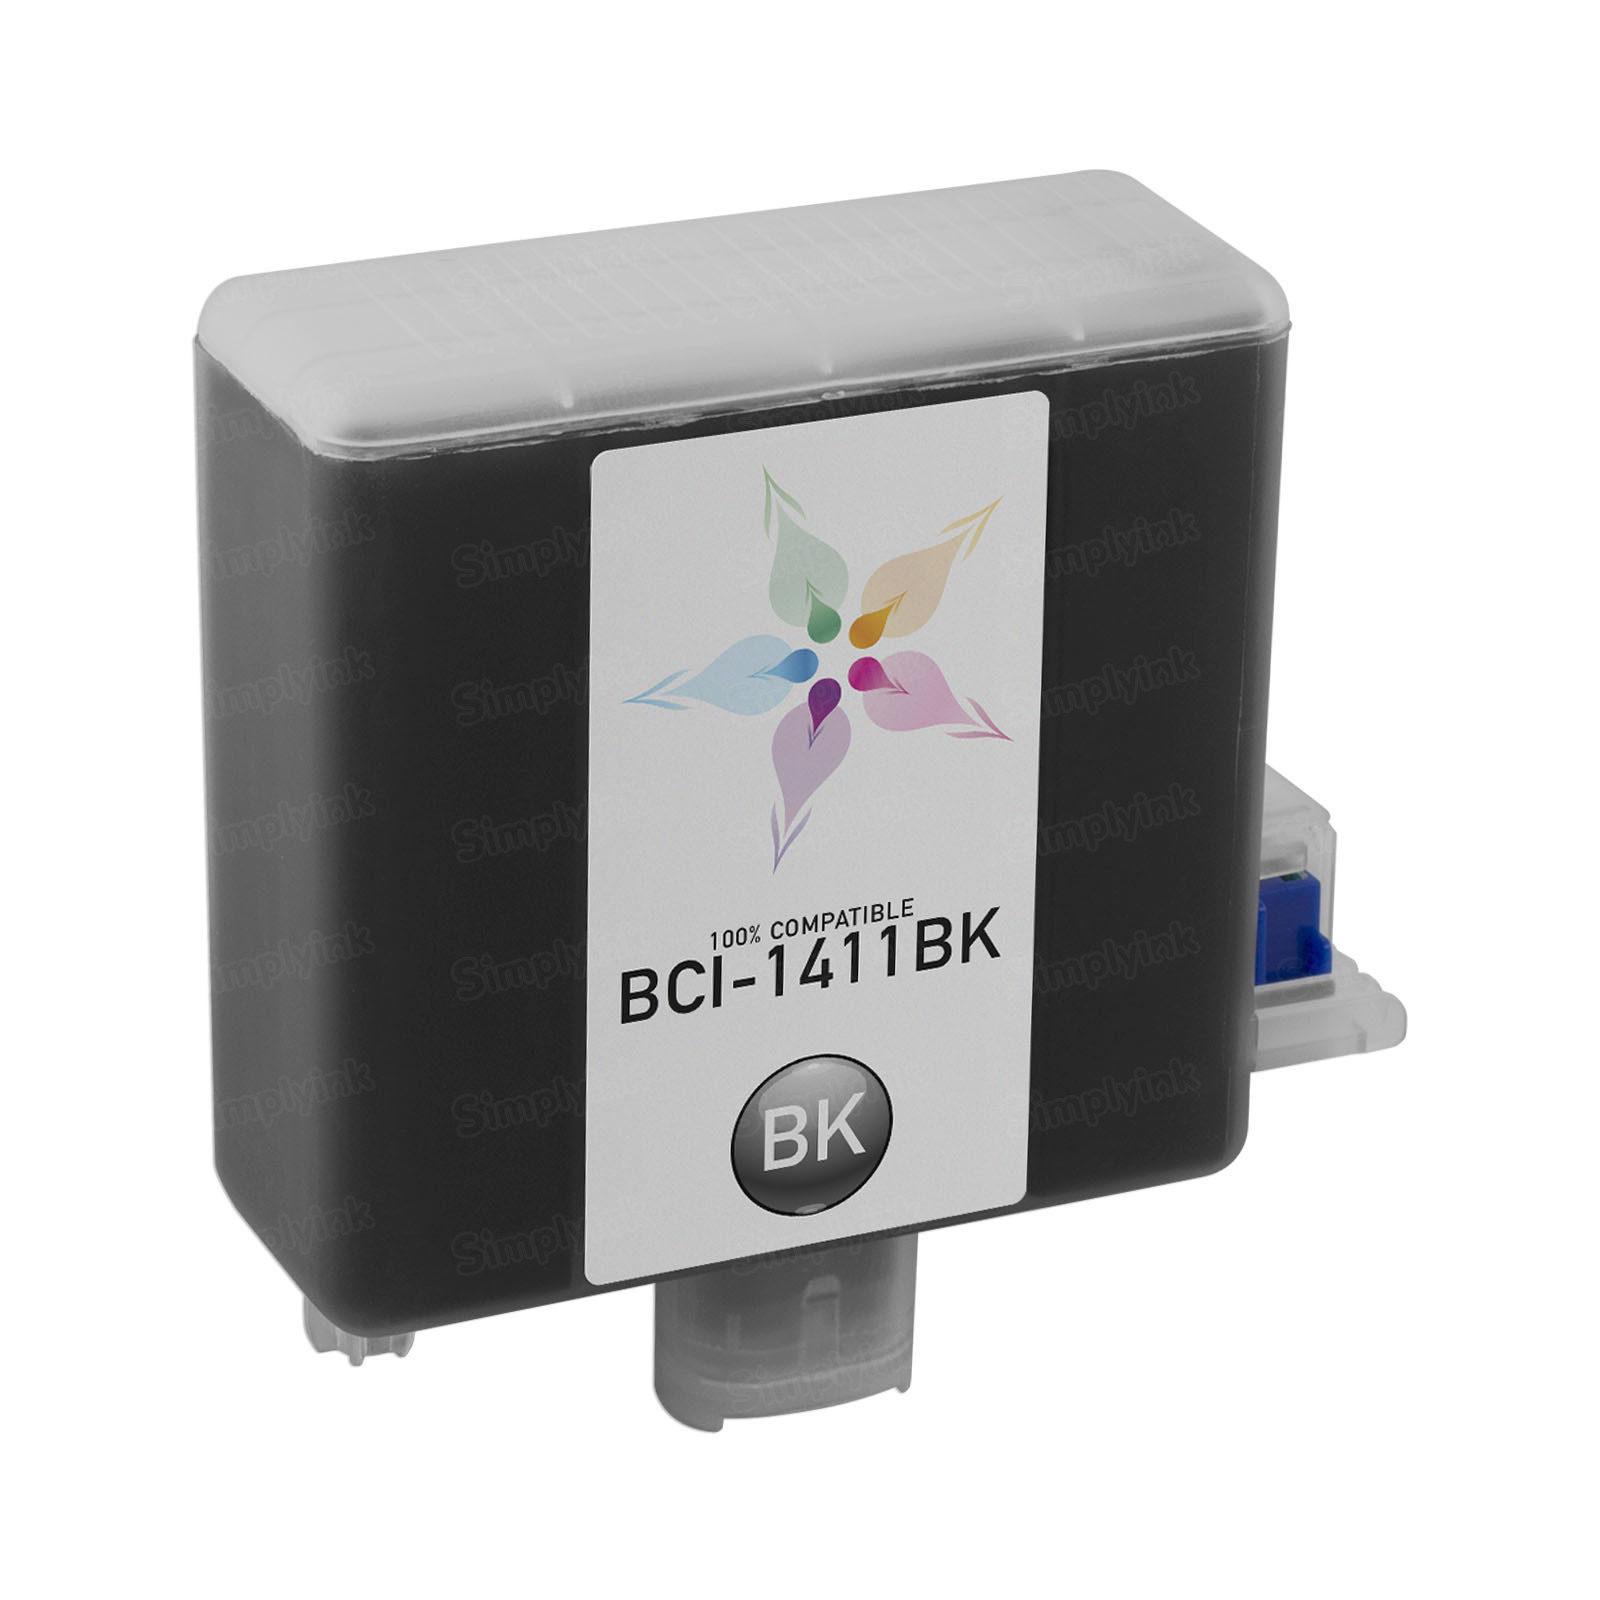 Canon Compatible BCI-1411BK Black Ink for imagePROGRAF W7200 & W8200